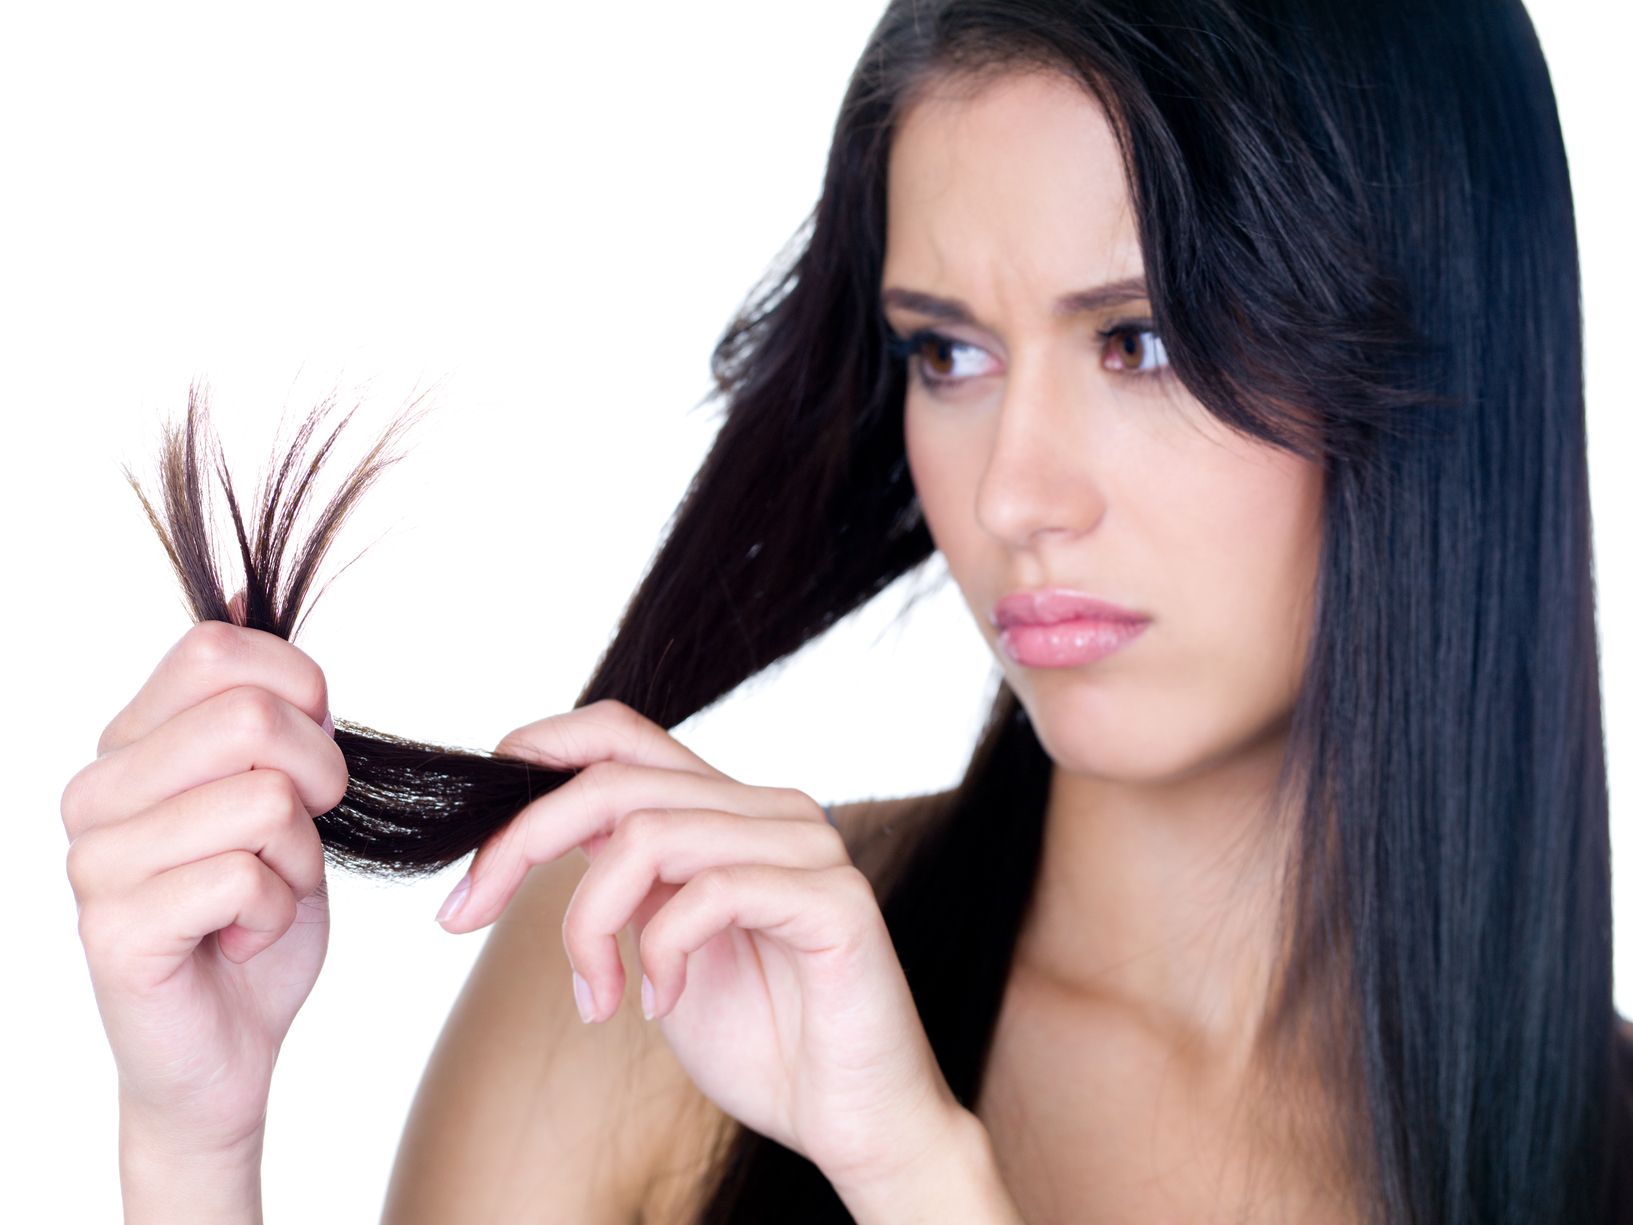 Terminal Length How Long Can The Average Person S Hair Grow How To Make Your Hair Grow Faster Tips To Grow Long Hair Faster